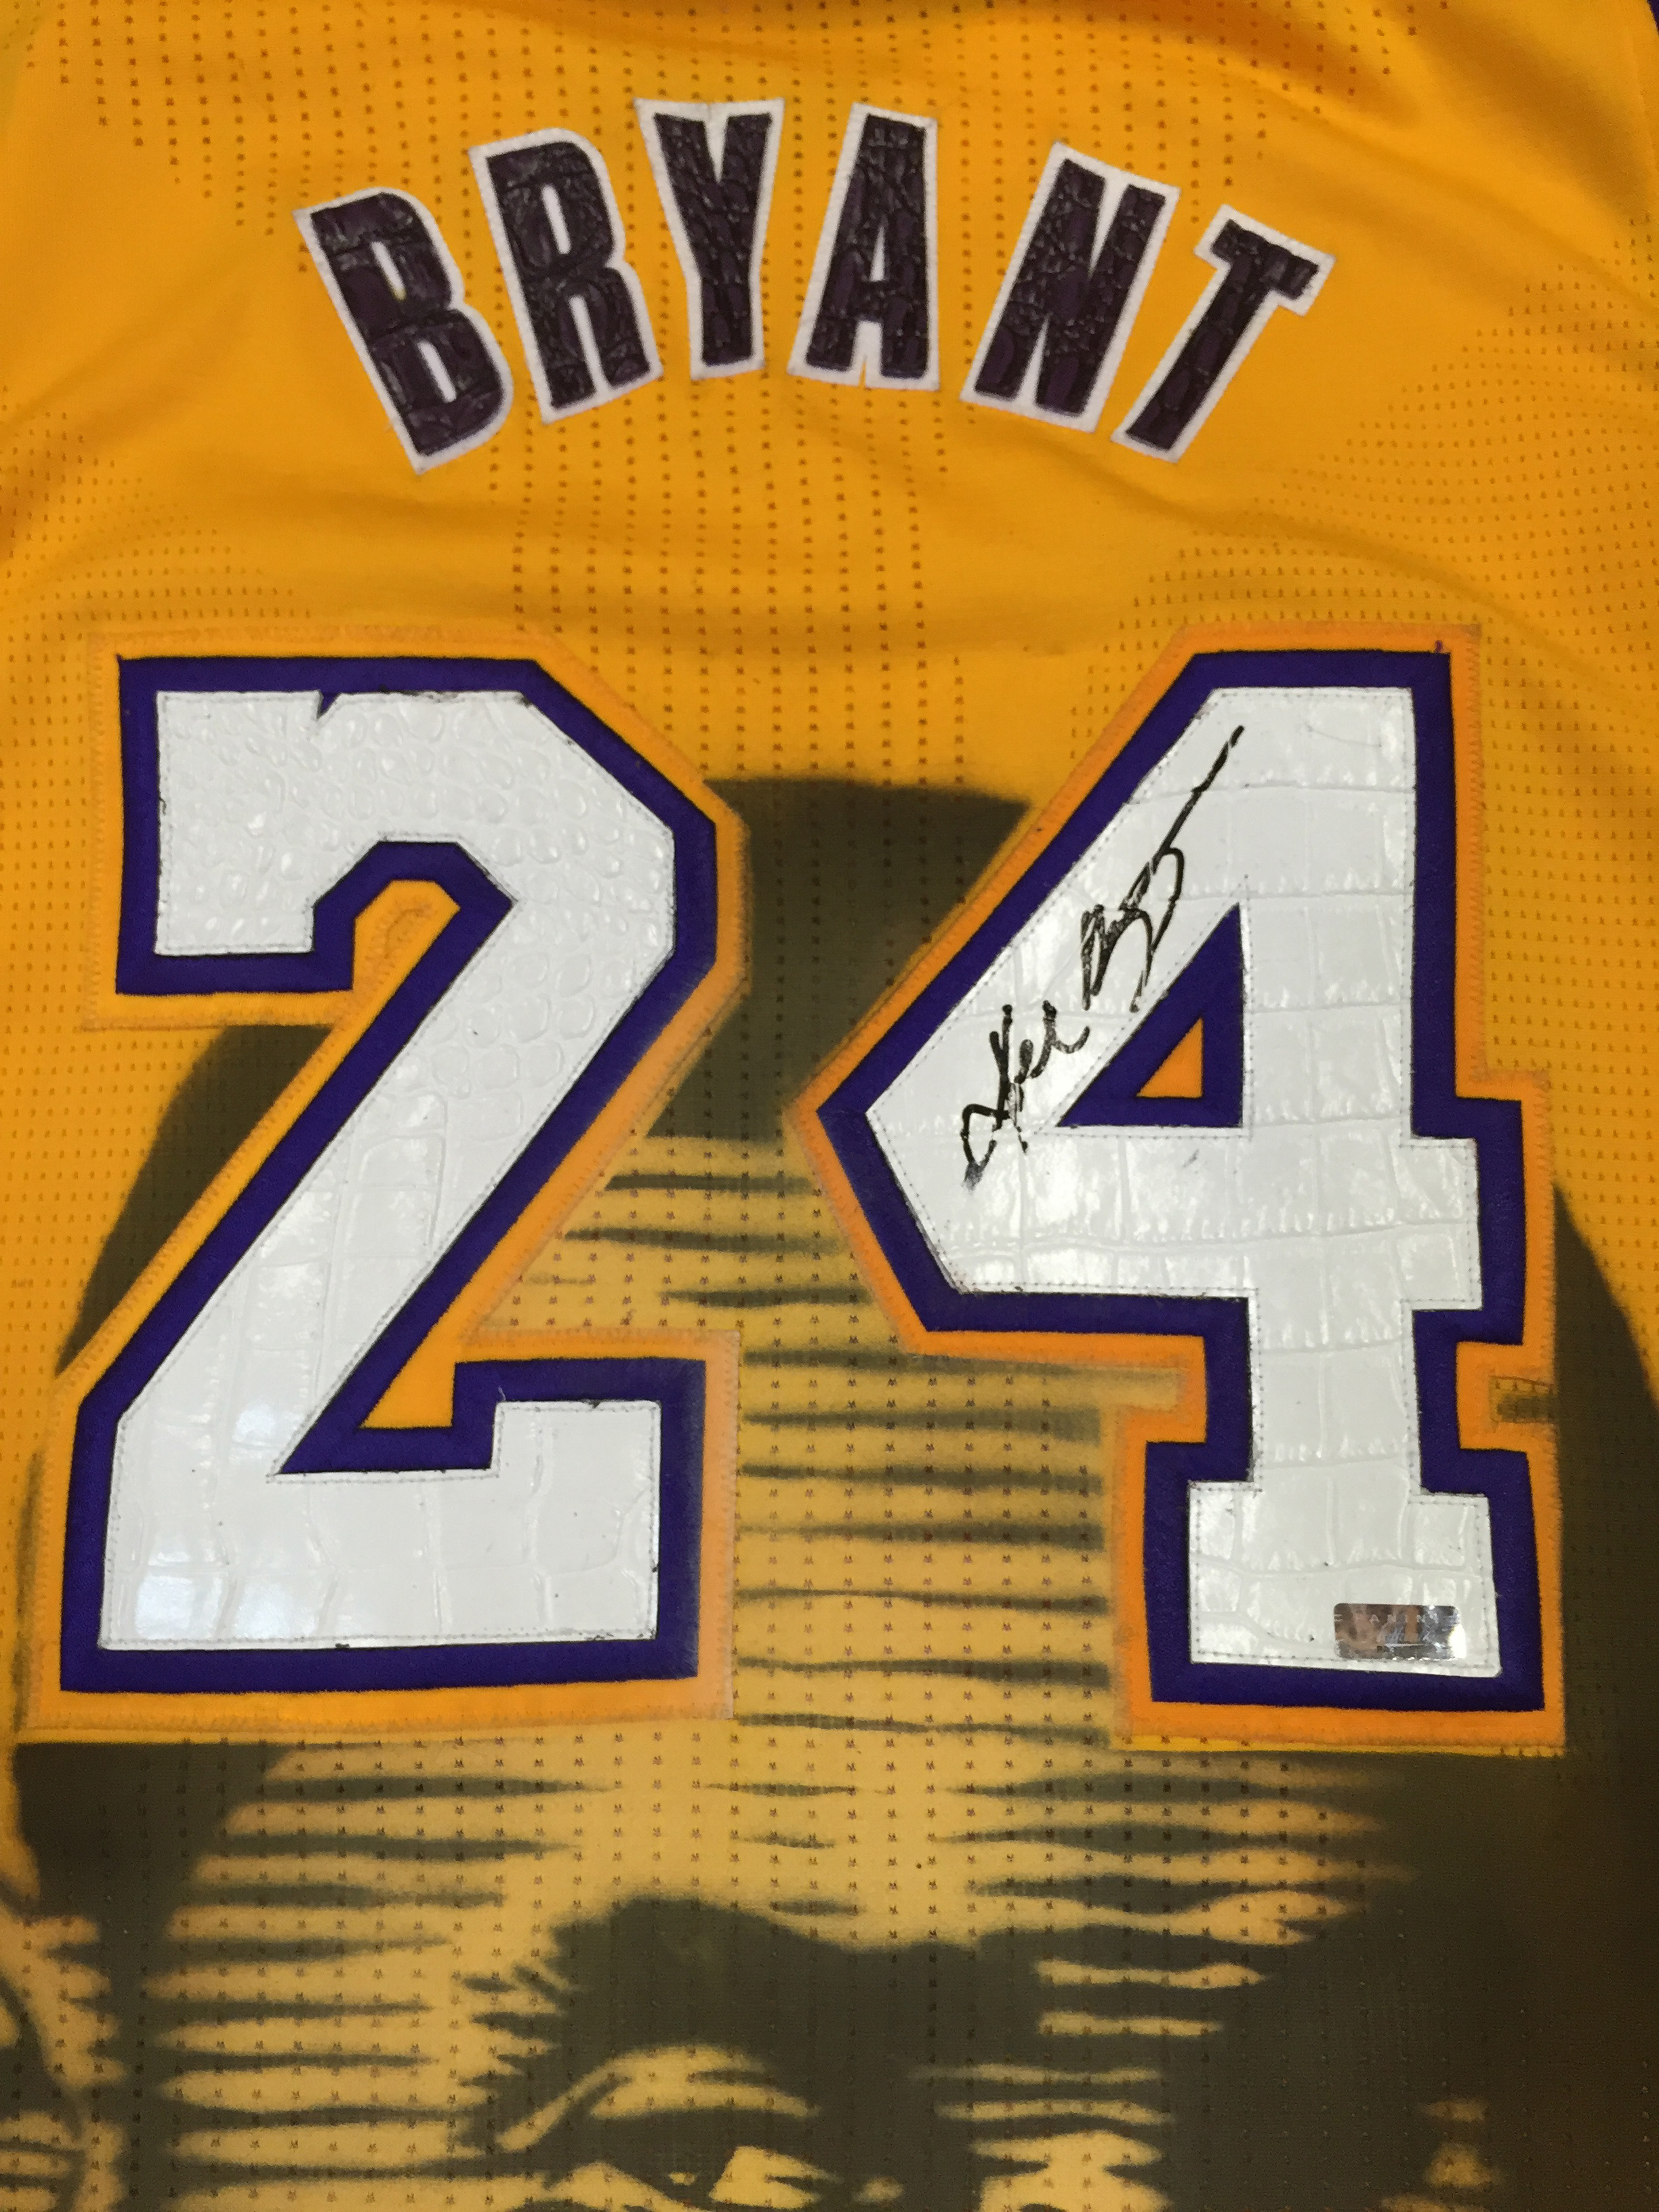 2b8dc0f9c949 ... Kobe Bryant Los Angeles Lakers Pro Cut Autographed Jersey Painted by  Artist Teachr 1 1